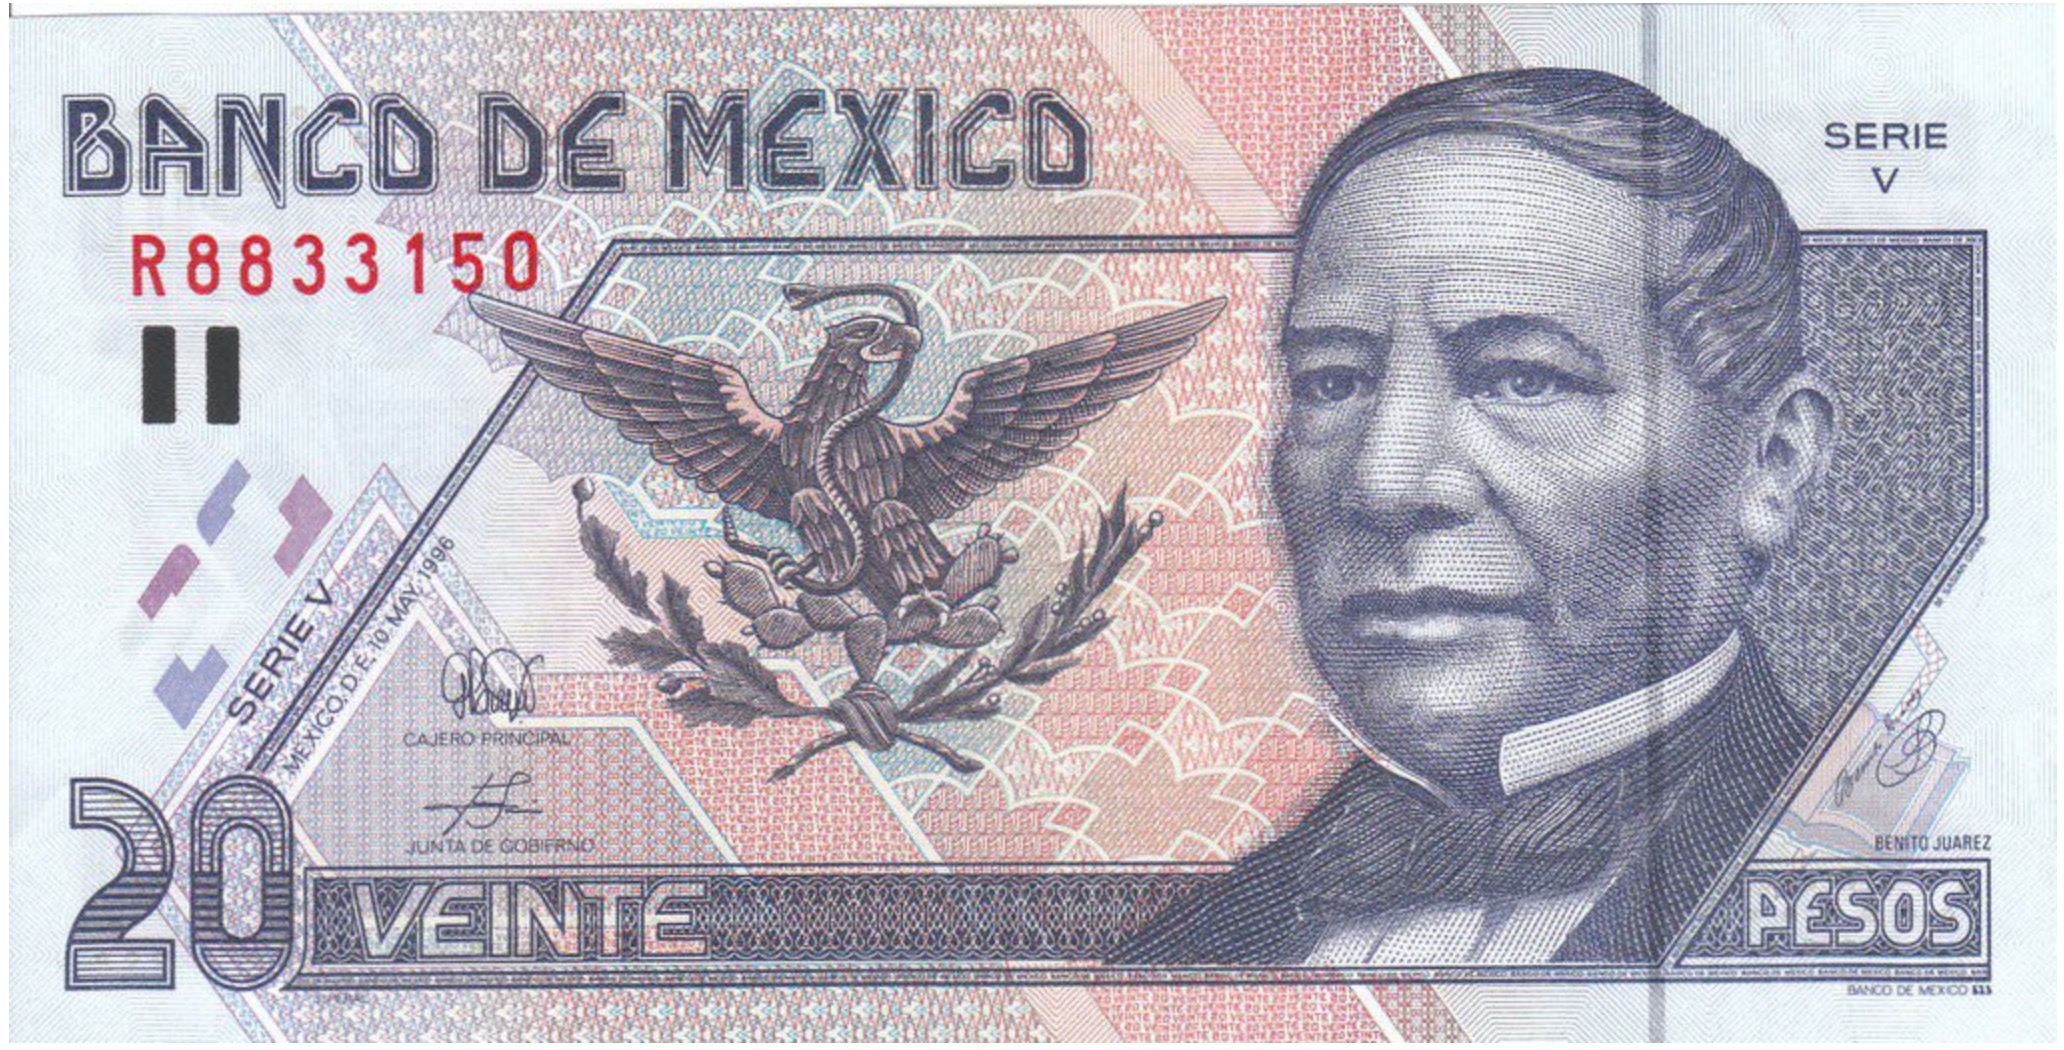 20 Mexican Pesos banknote (Series D)